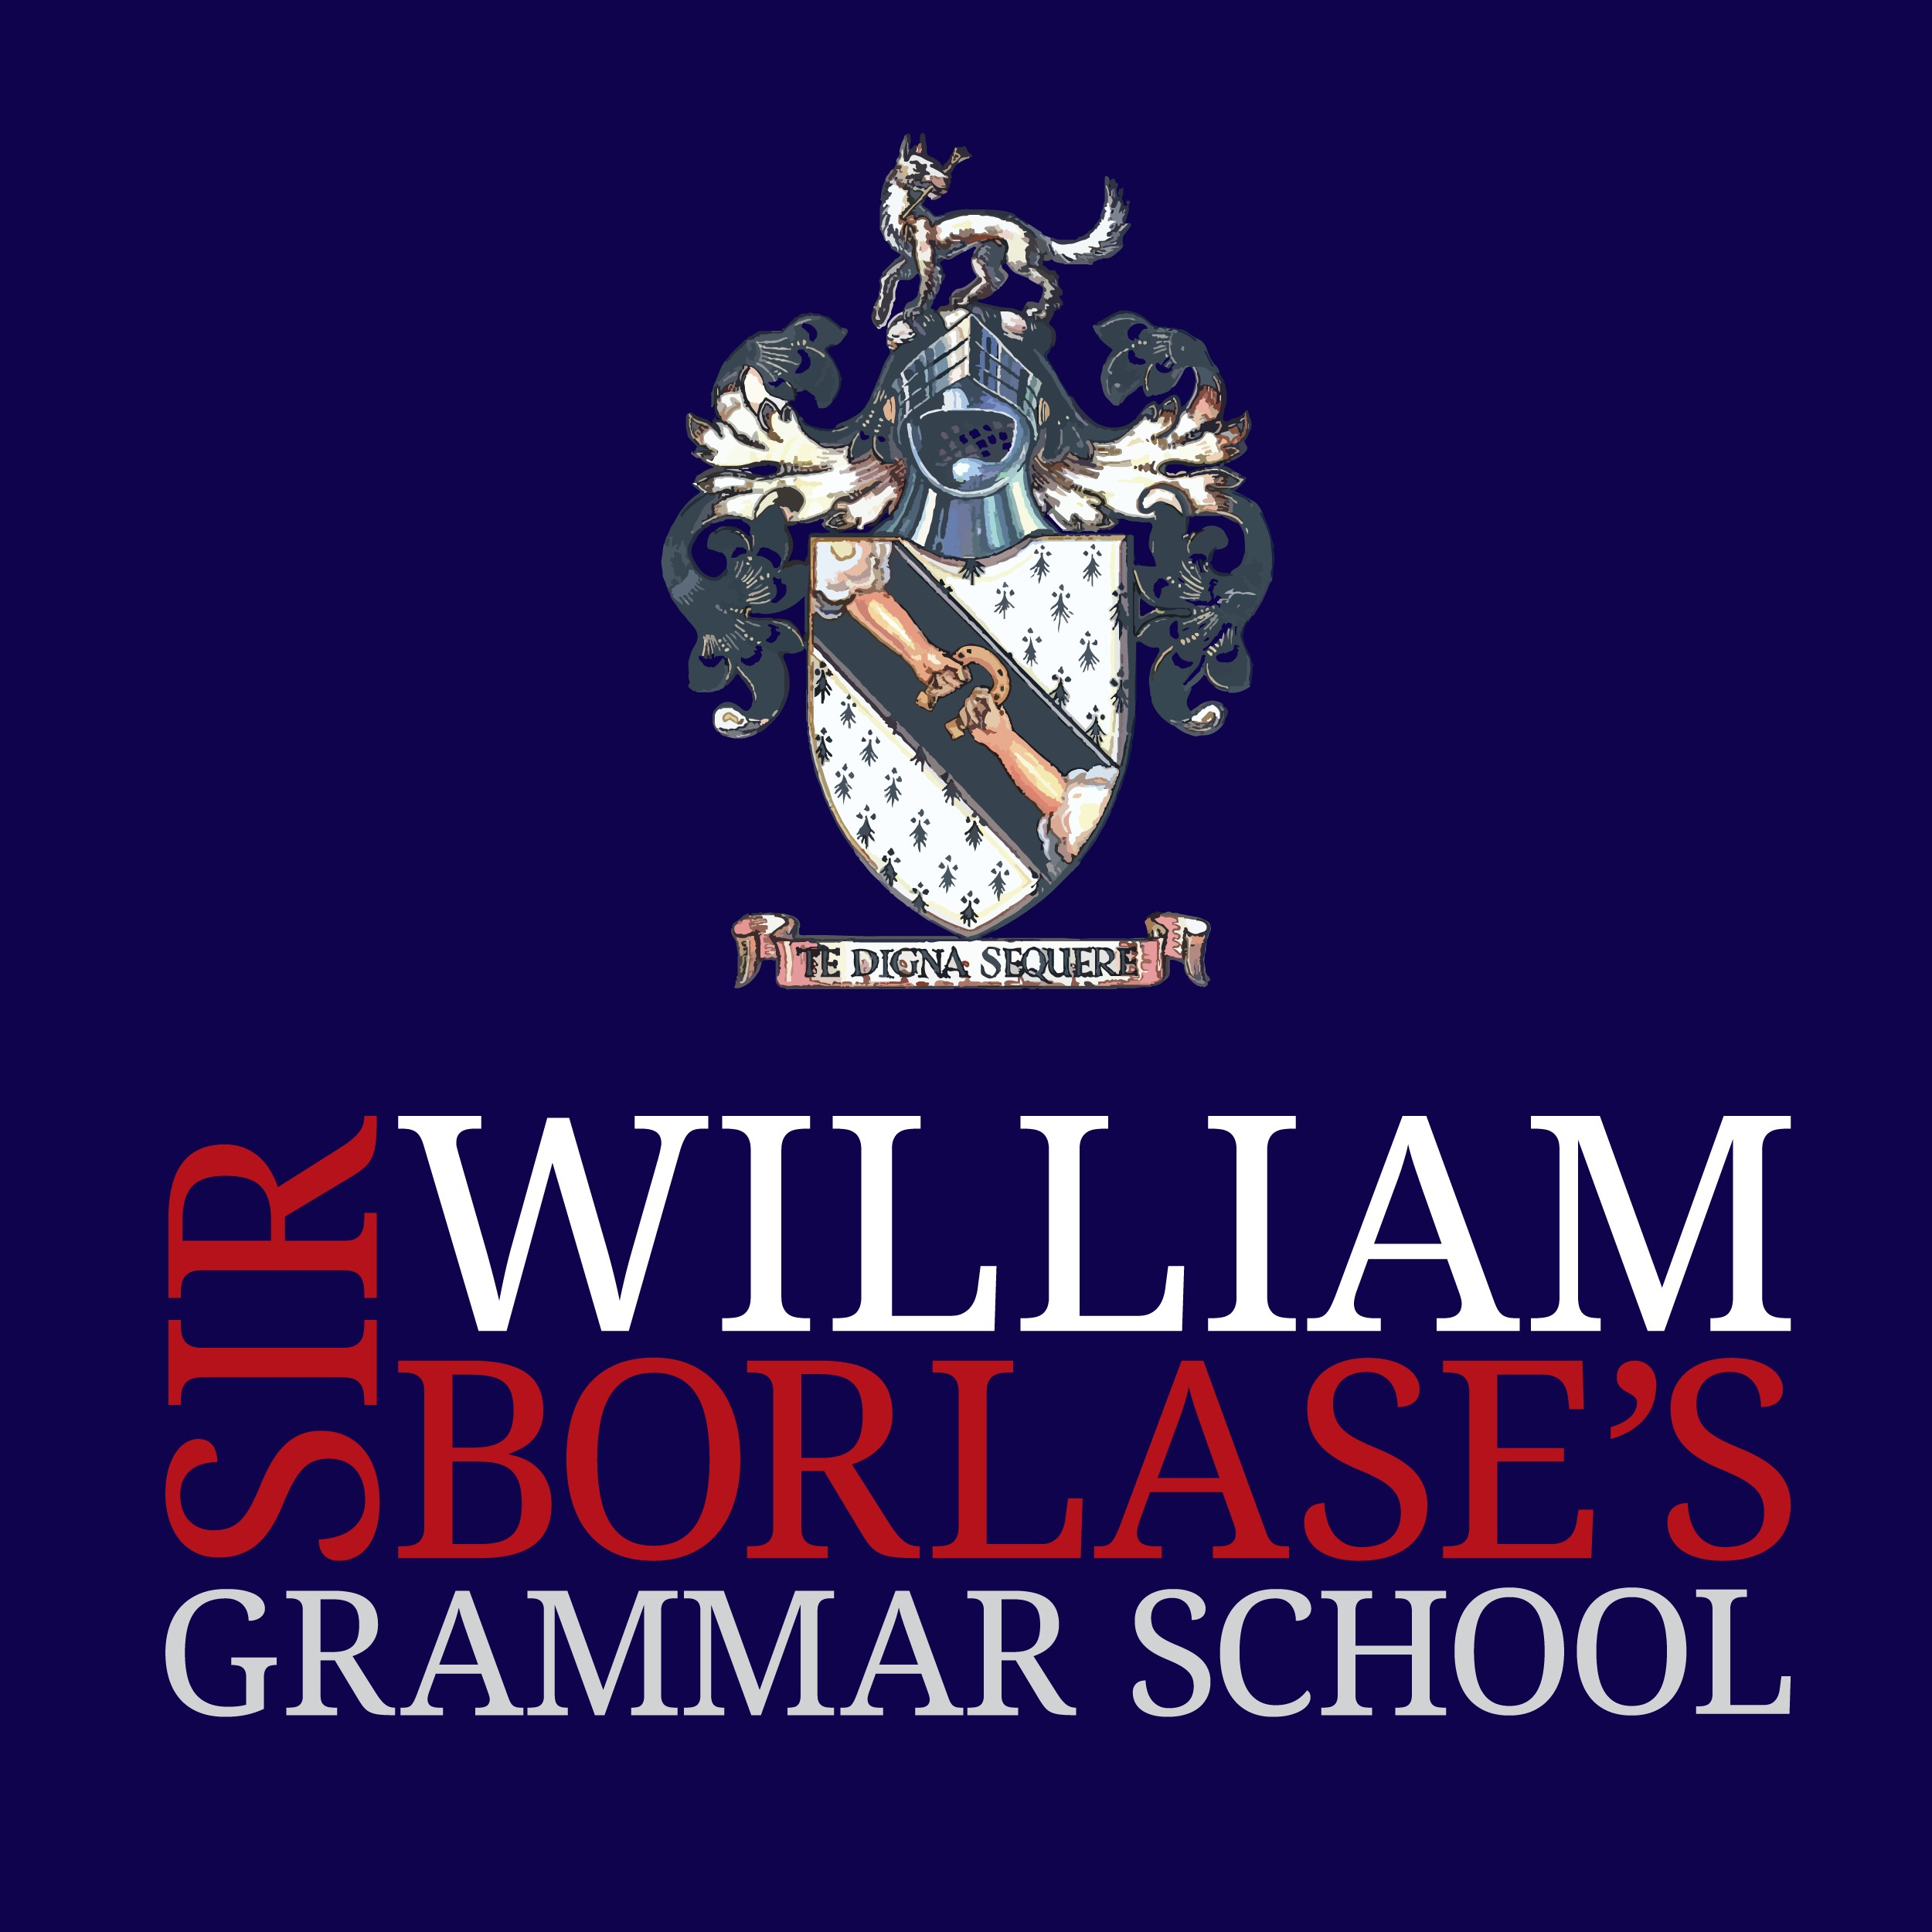 Sir William Borlase's Grammar School, Marlow